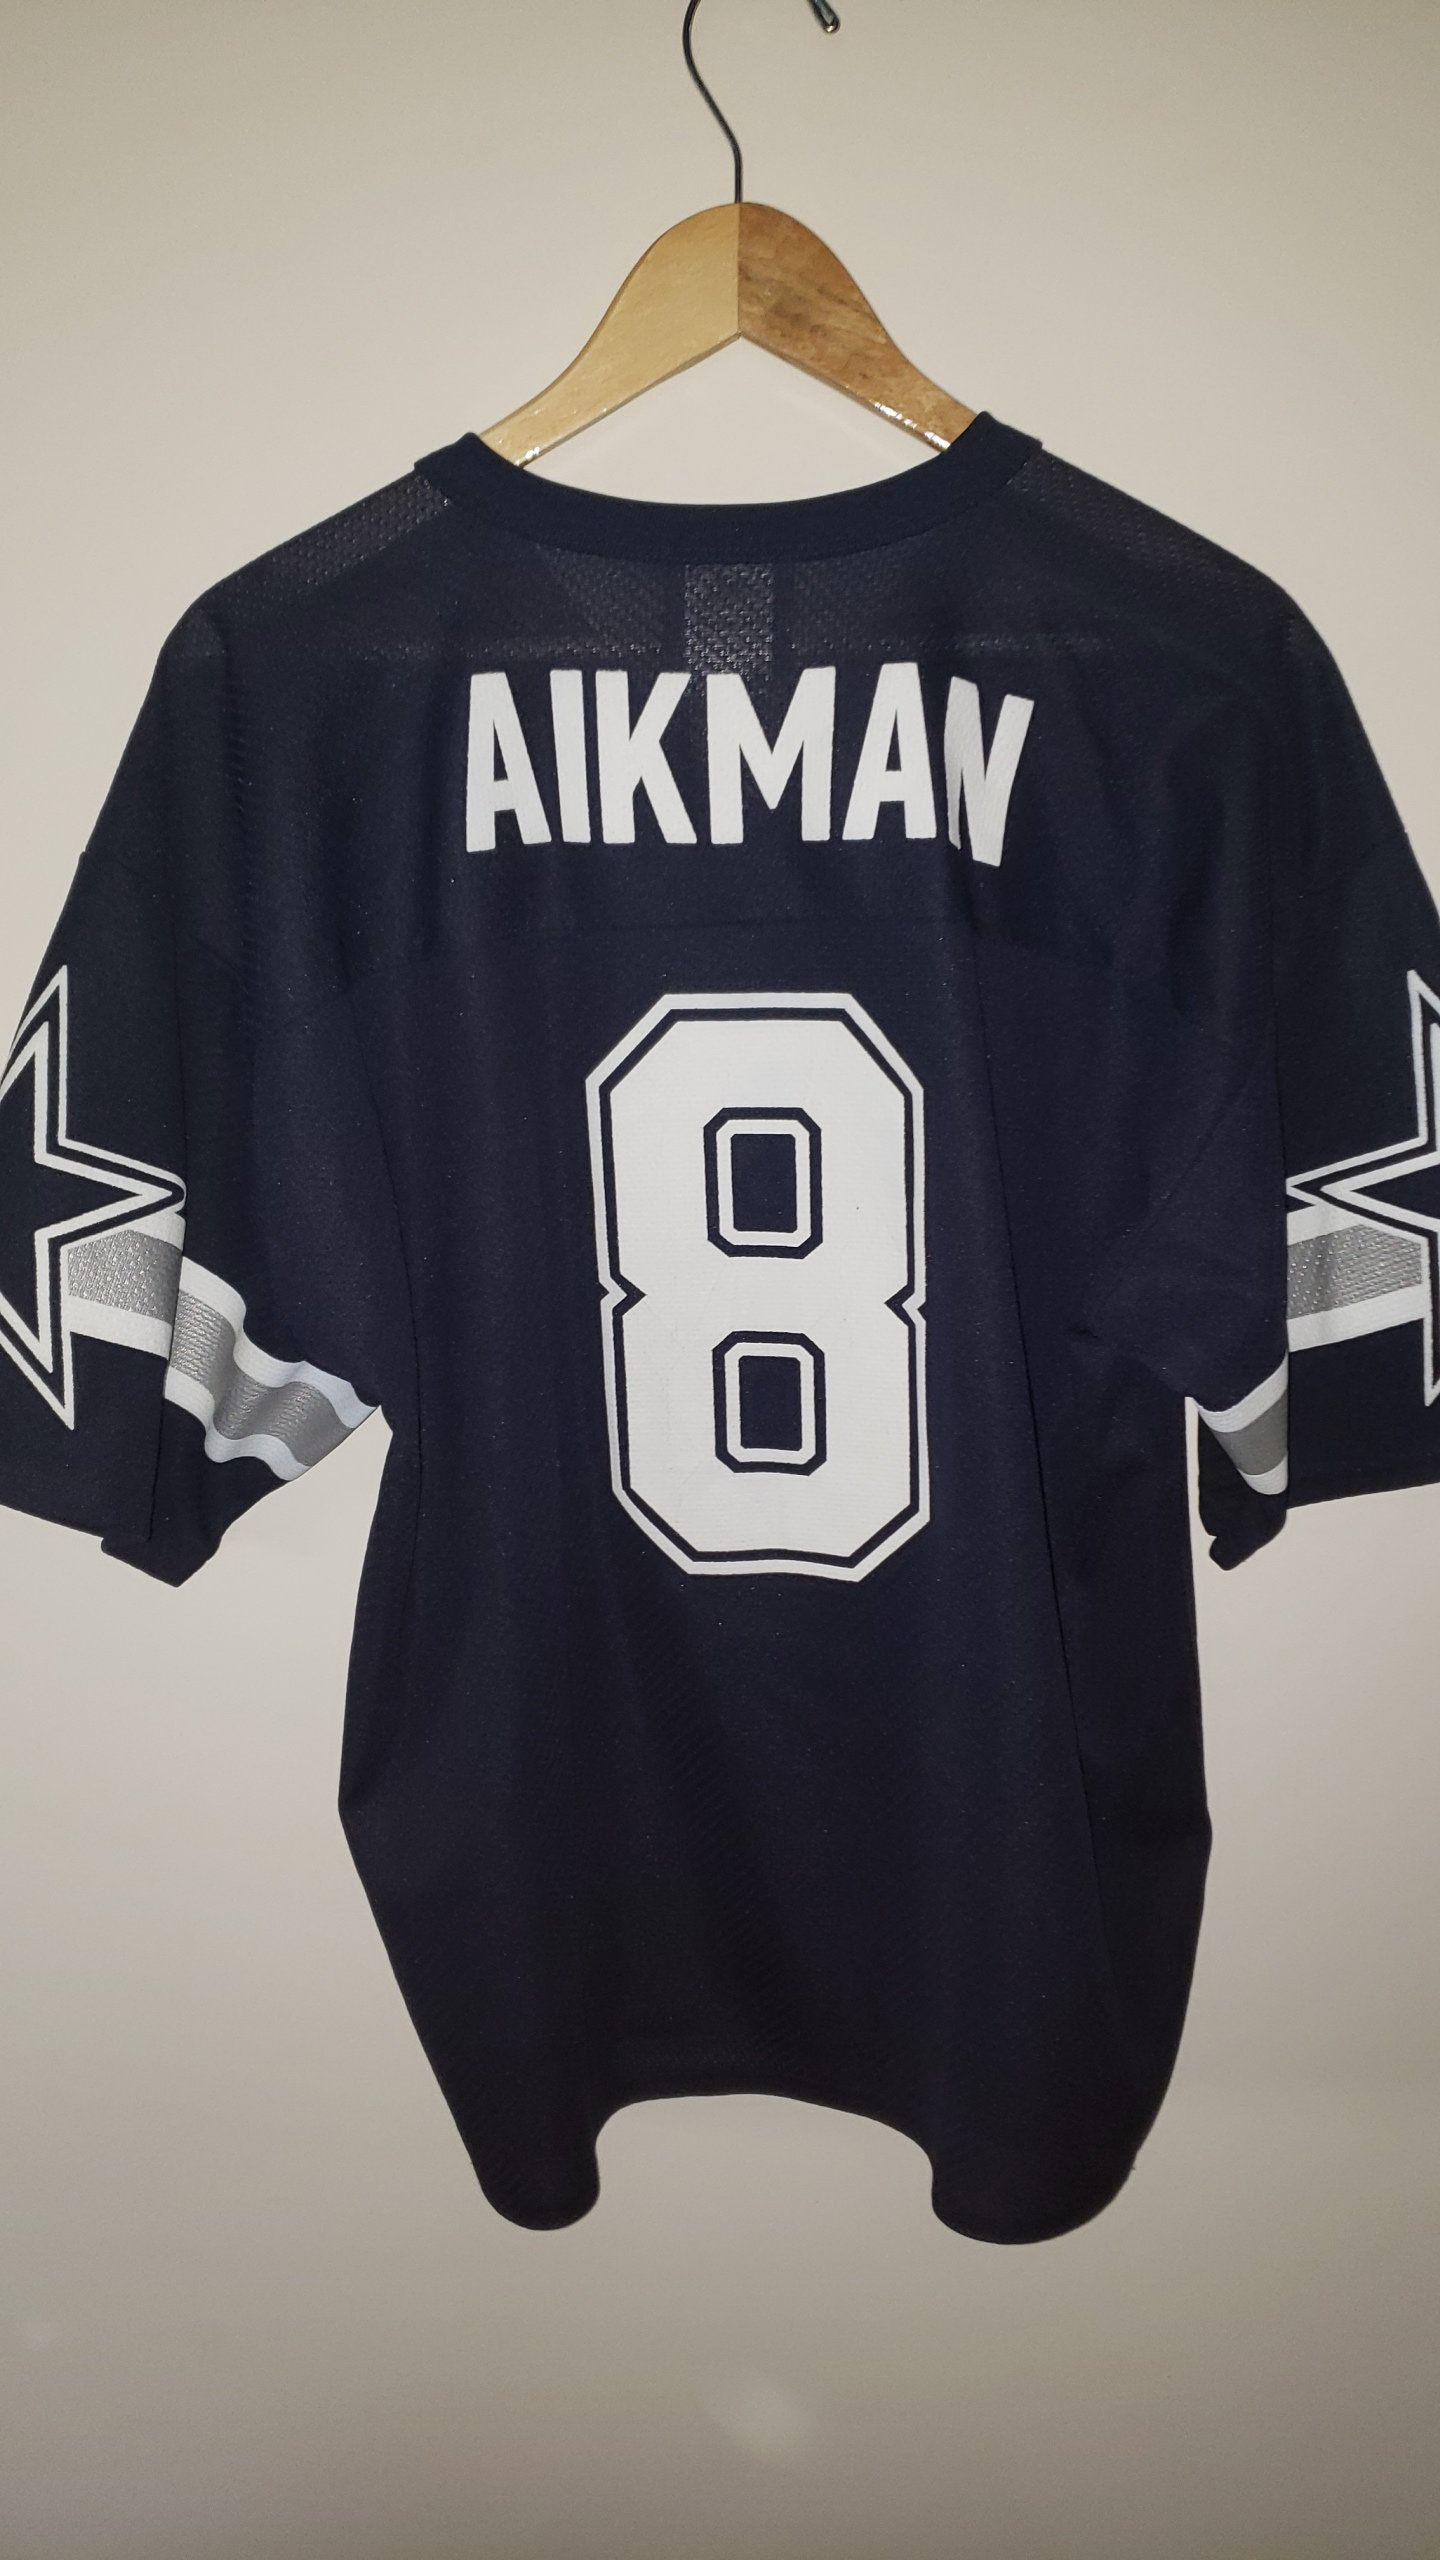 1ef6a3a639f Vintage 90's NFL Dallas Cowboys Troy Aikman Logo Athletic Jersey - Size XL  Starter Sports Hip Hop Urban Fashion Football QB Hall of Fame by  RackRaidersVtg ...